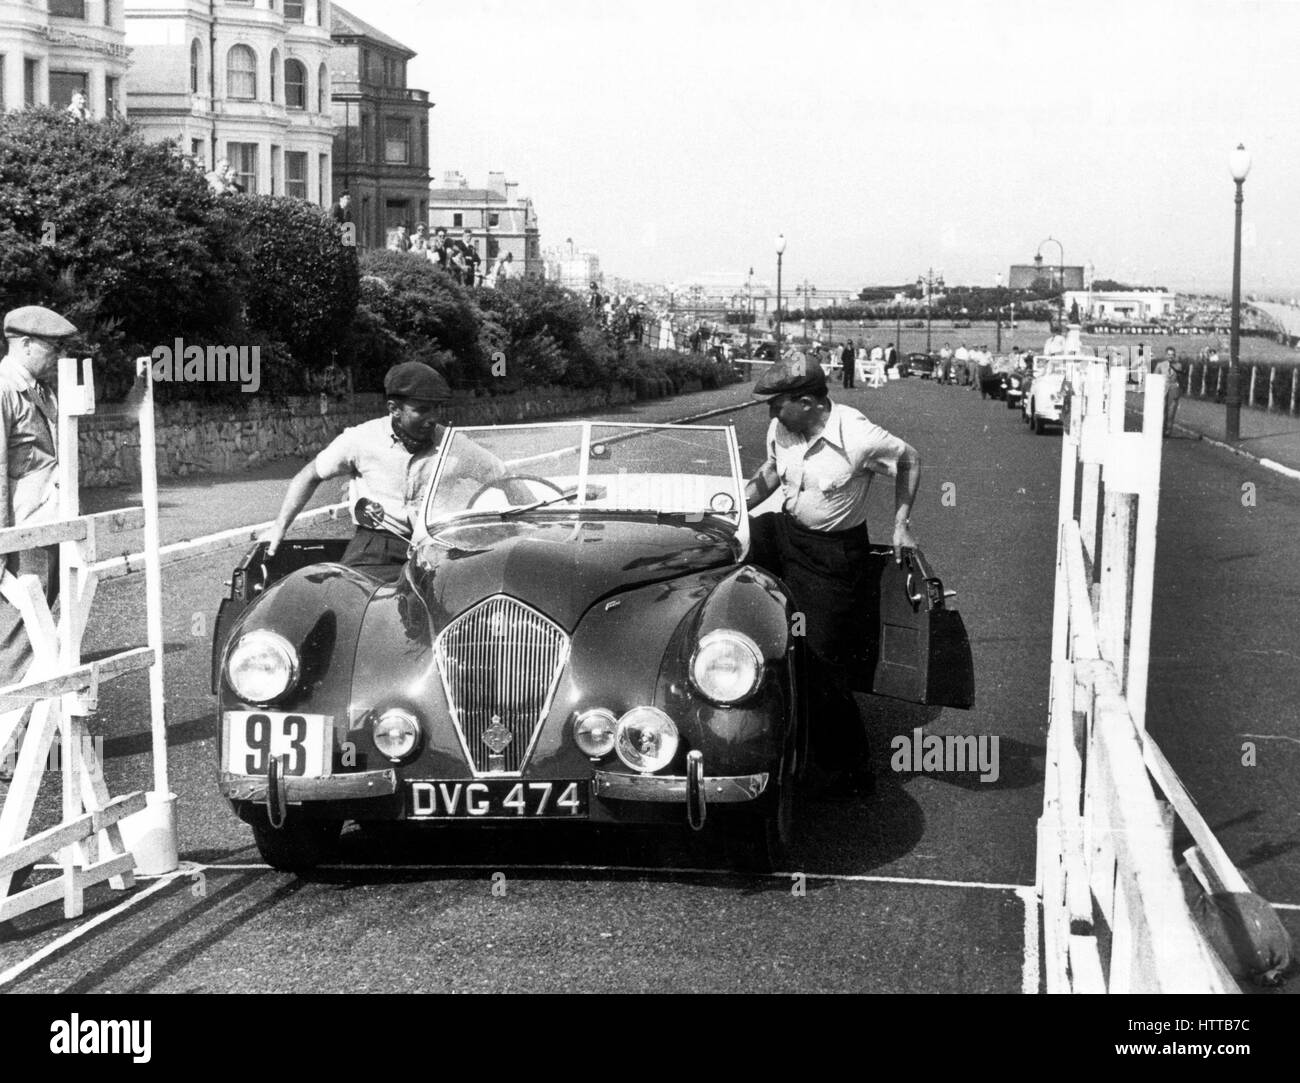 Healey Westland 2.4 of S.P.A. Freeman. Eastbourne rally 5th July 1952 - Stock Image